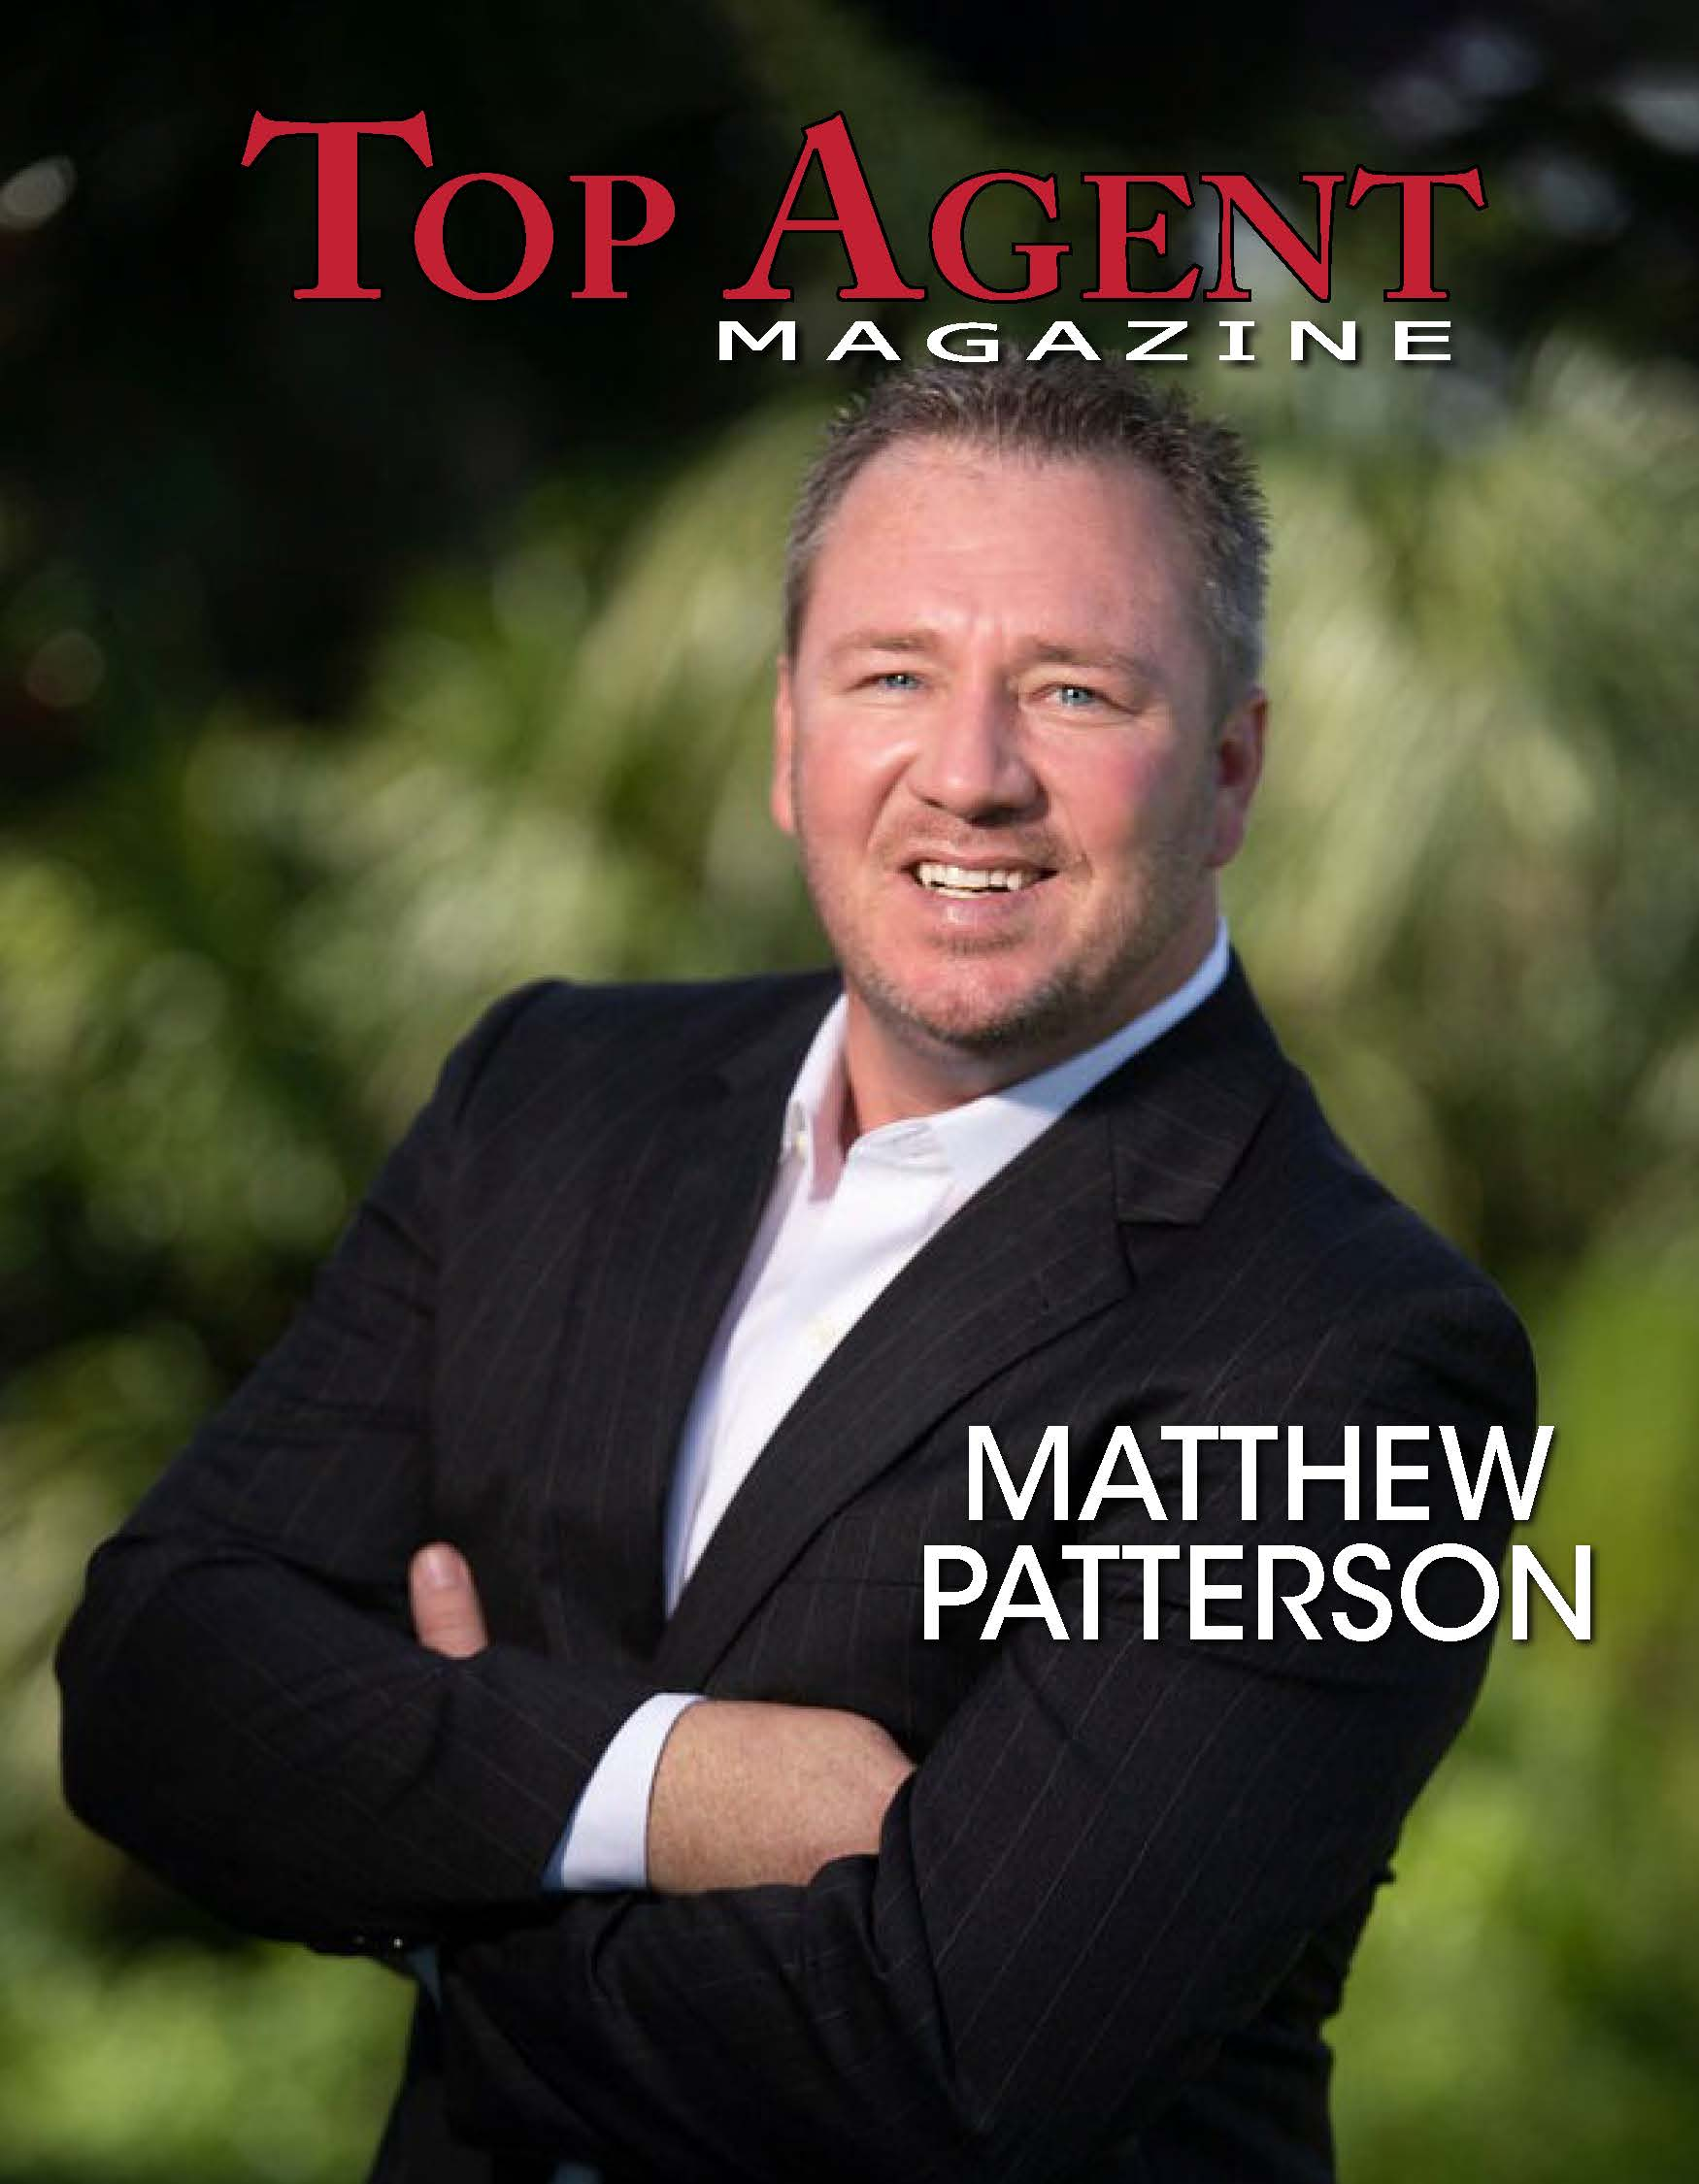 Top Agent Magazine with Matthew Patterson